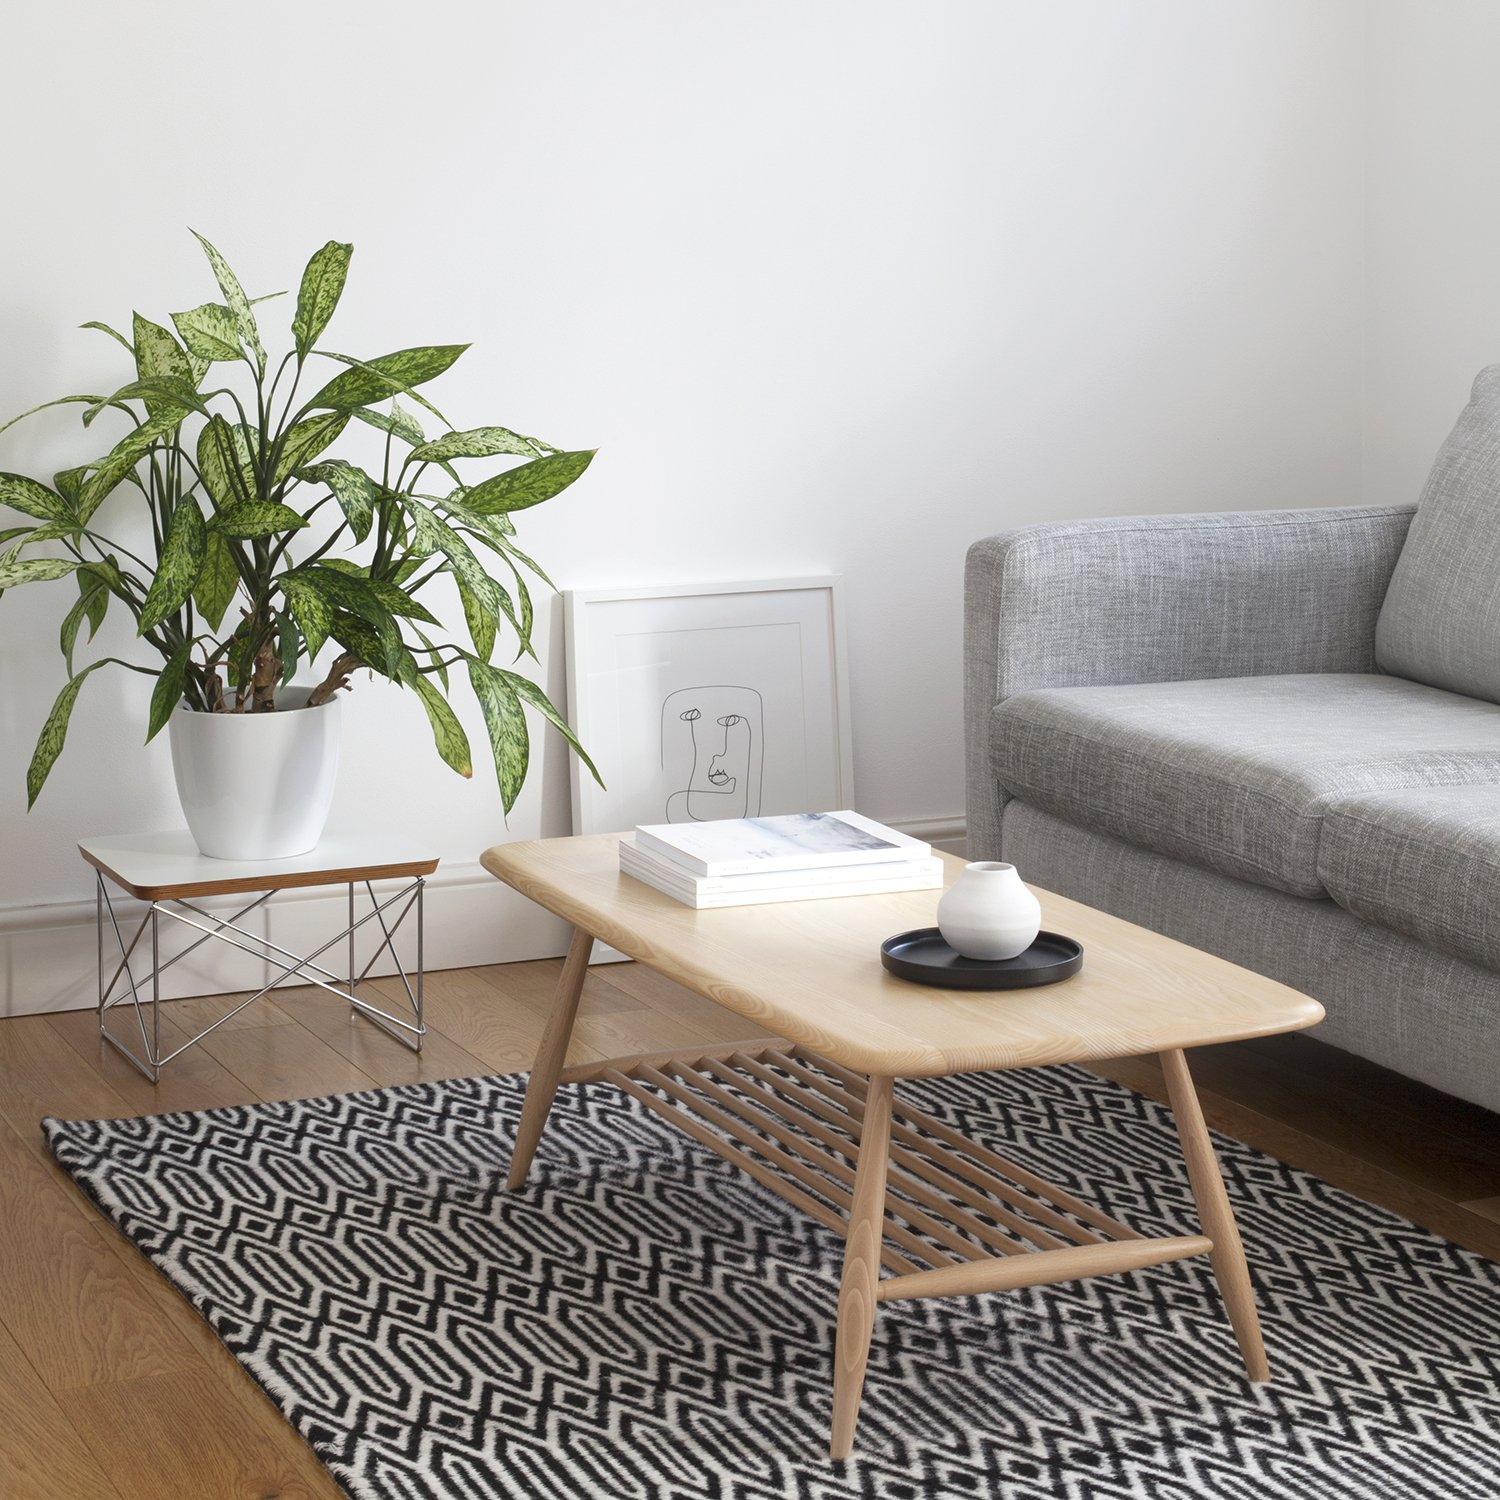 How to Maximise Your Space in a Small Home | Natasha Denness Coaching (photo of a living room with a grey sofa)